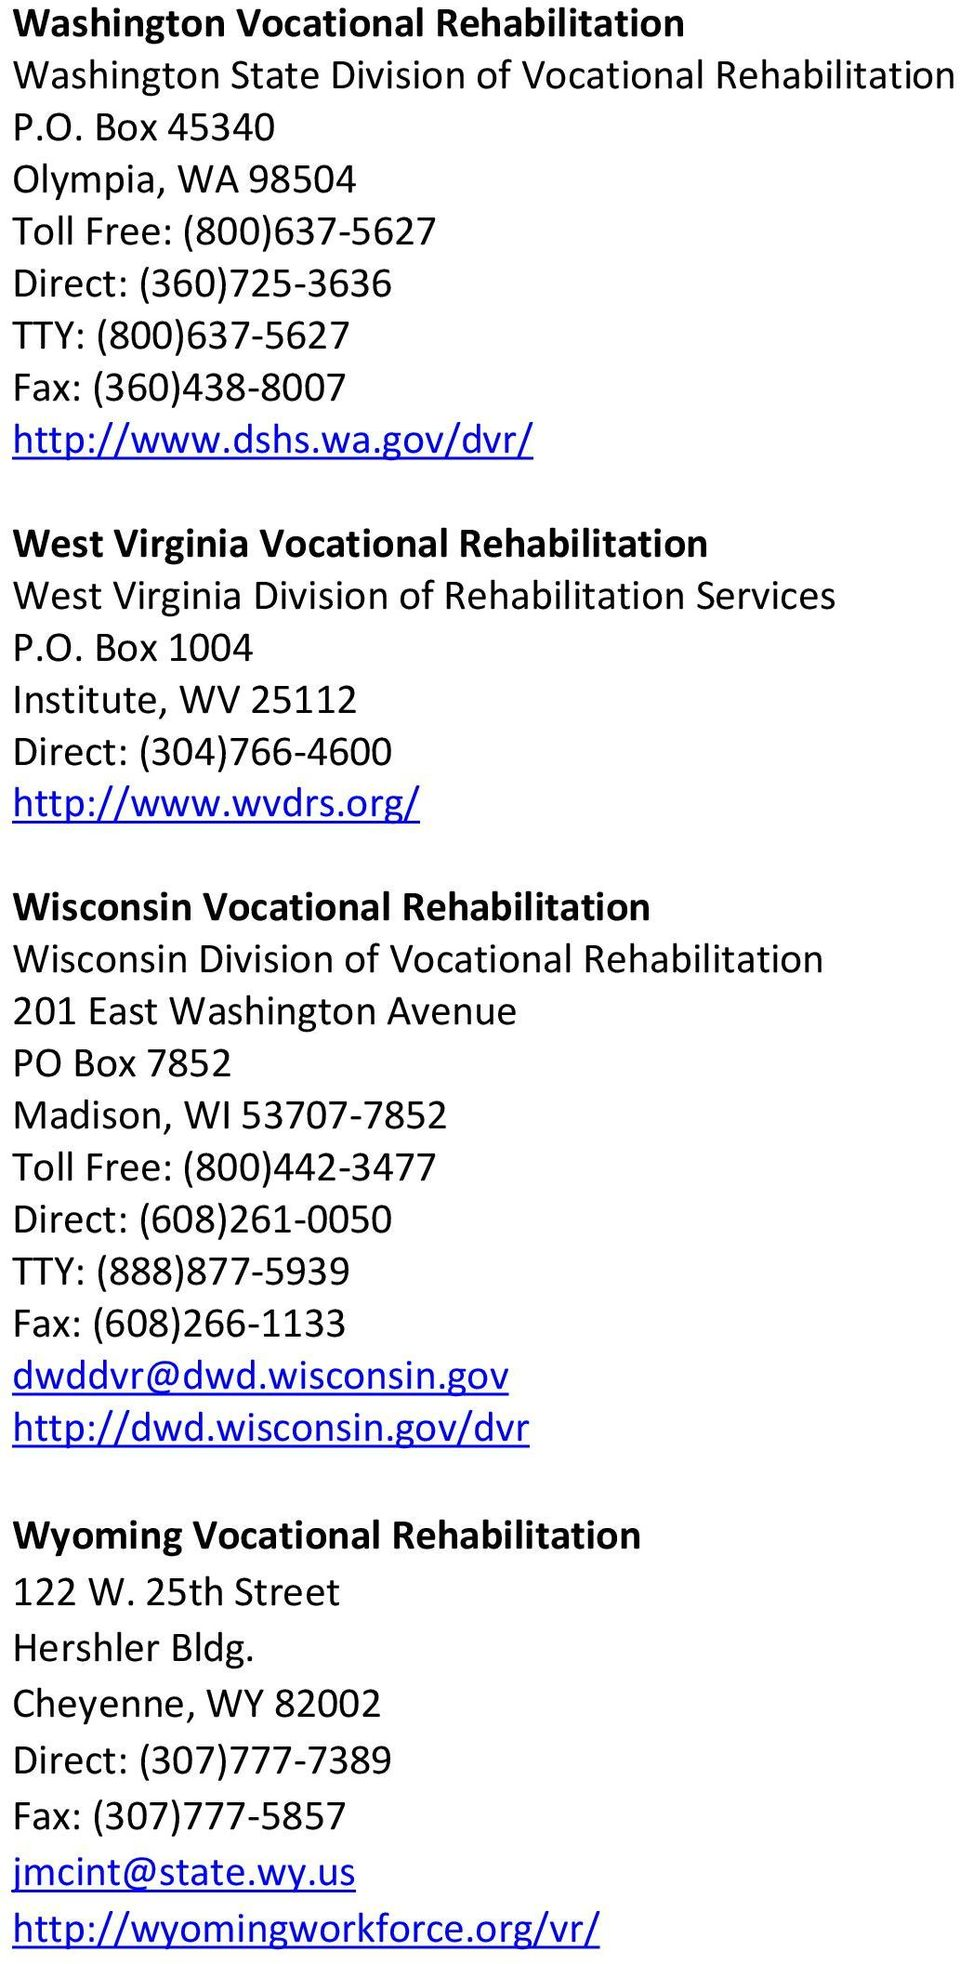 gov/dvr/ West Virginia Vocational Rehabilitation West Virginia Division of Rehabilitation Services P.O. Box 1004 Institute, WV 25112 Direct: (304)766-4600 http://www.wvdrs.